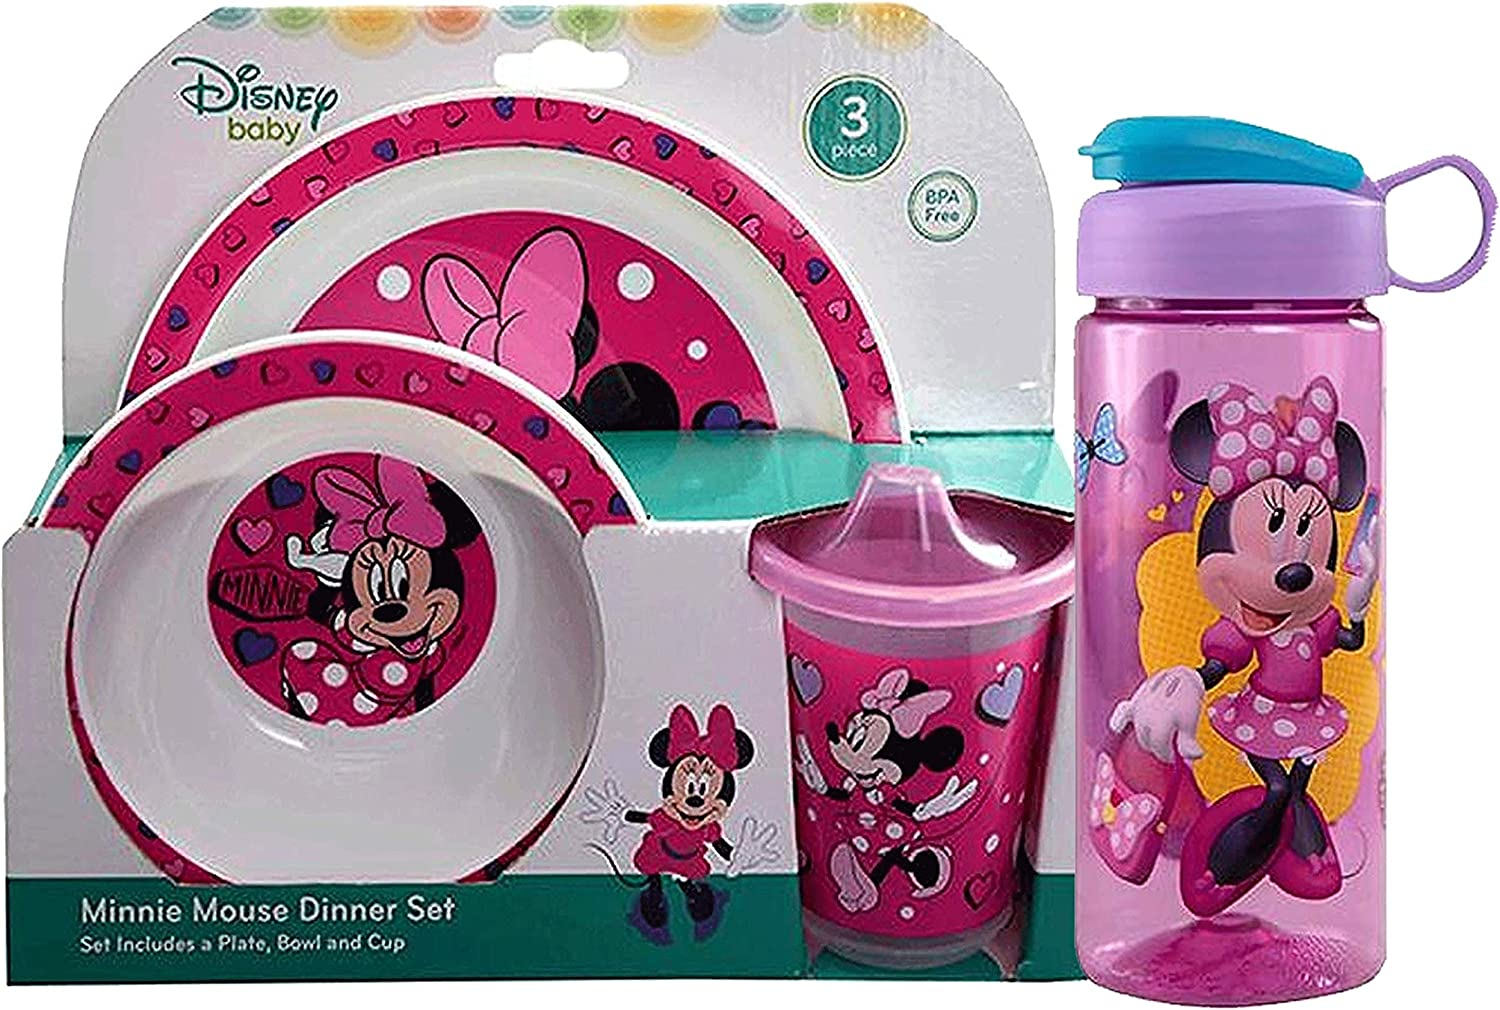 Fork /& Spoon Sippy cup Minnie Mouse 5pc Toddler Mealtime Set Plate Bowl BPA Free